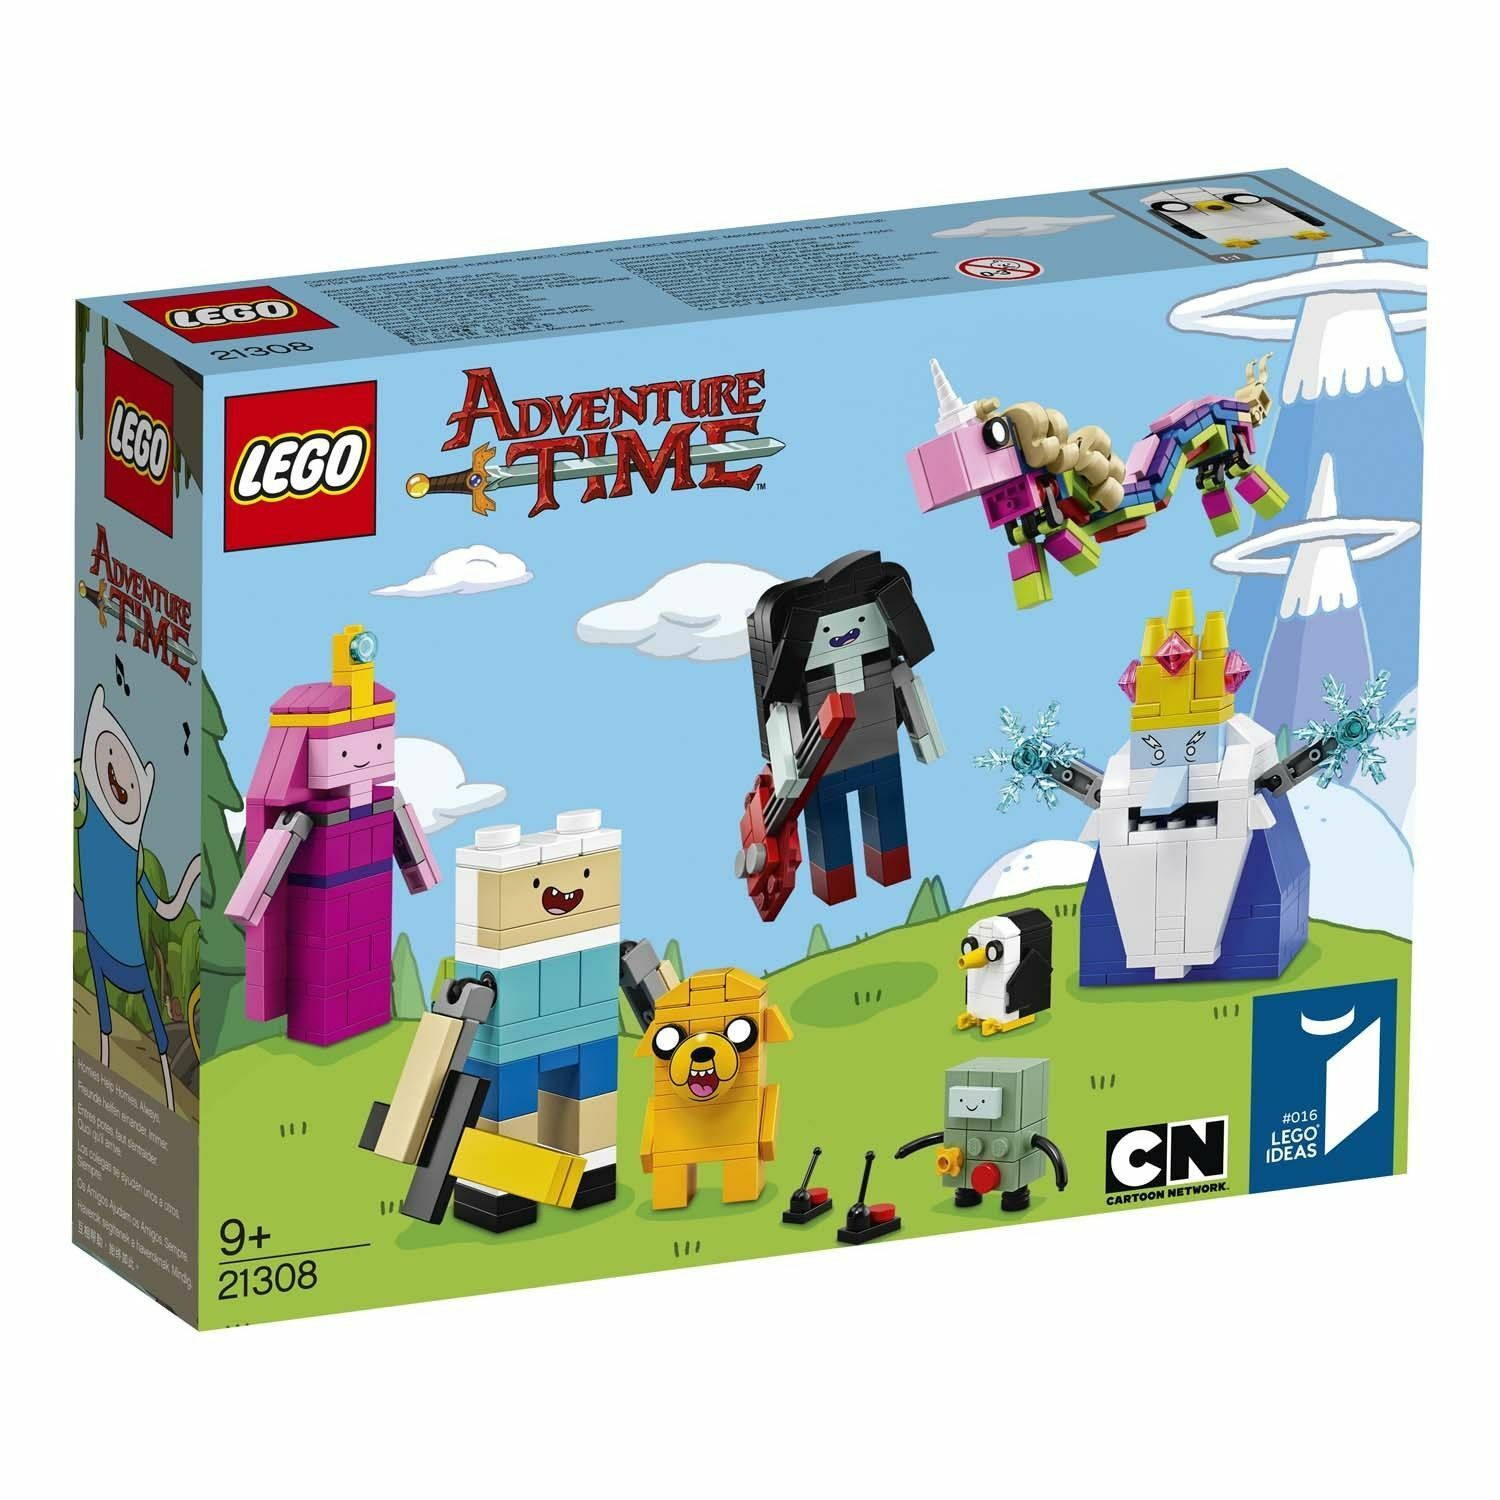 Lego 21308 Adventure Time nouveau  SEALED  se hâta de voir